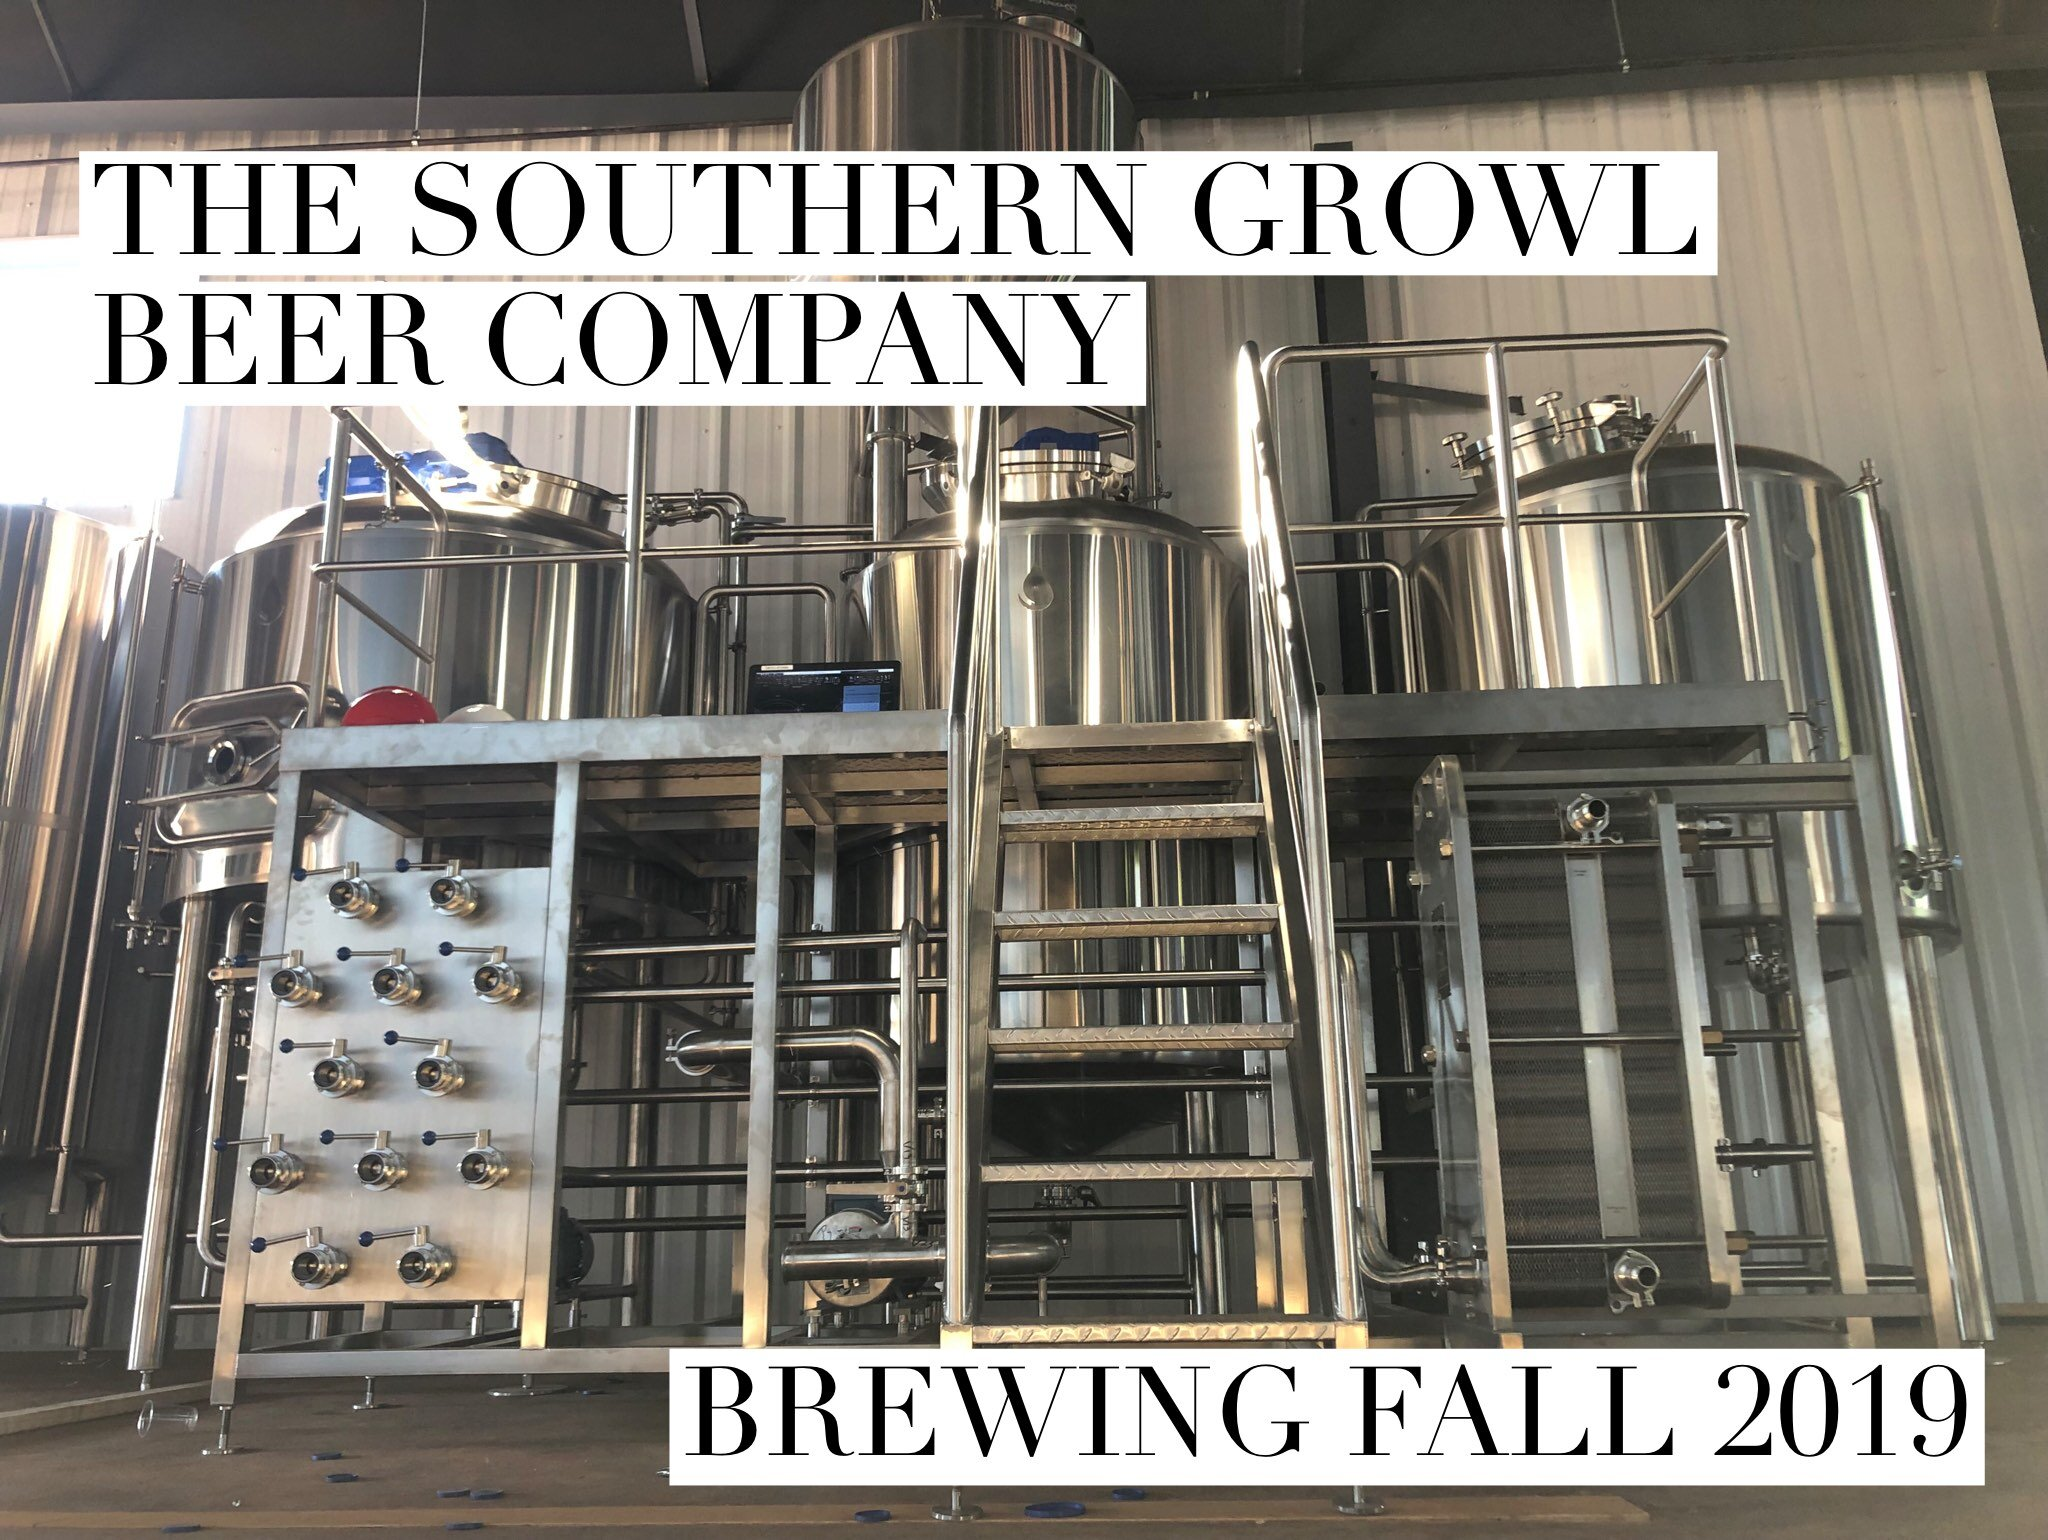 9/25/19  The last few weeks have been very exciting at the brewery construction site. Lots of work is getting done inside and outside.. our vision is starting to come together and we can't wait to share it with all of you! We received a big delivery of brewing equipment and have been spending the time since then getting it in to place and set up. Although we don't yet have the on-site utilities in place to start brewing, we can finally look at this beautiful shiny equipment and dream about the brews we will be brewing in a few short weeks!